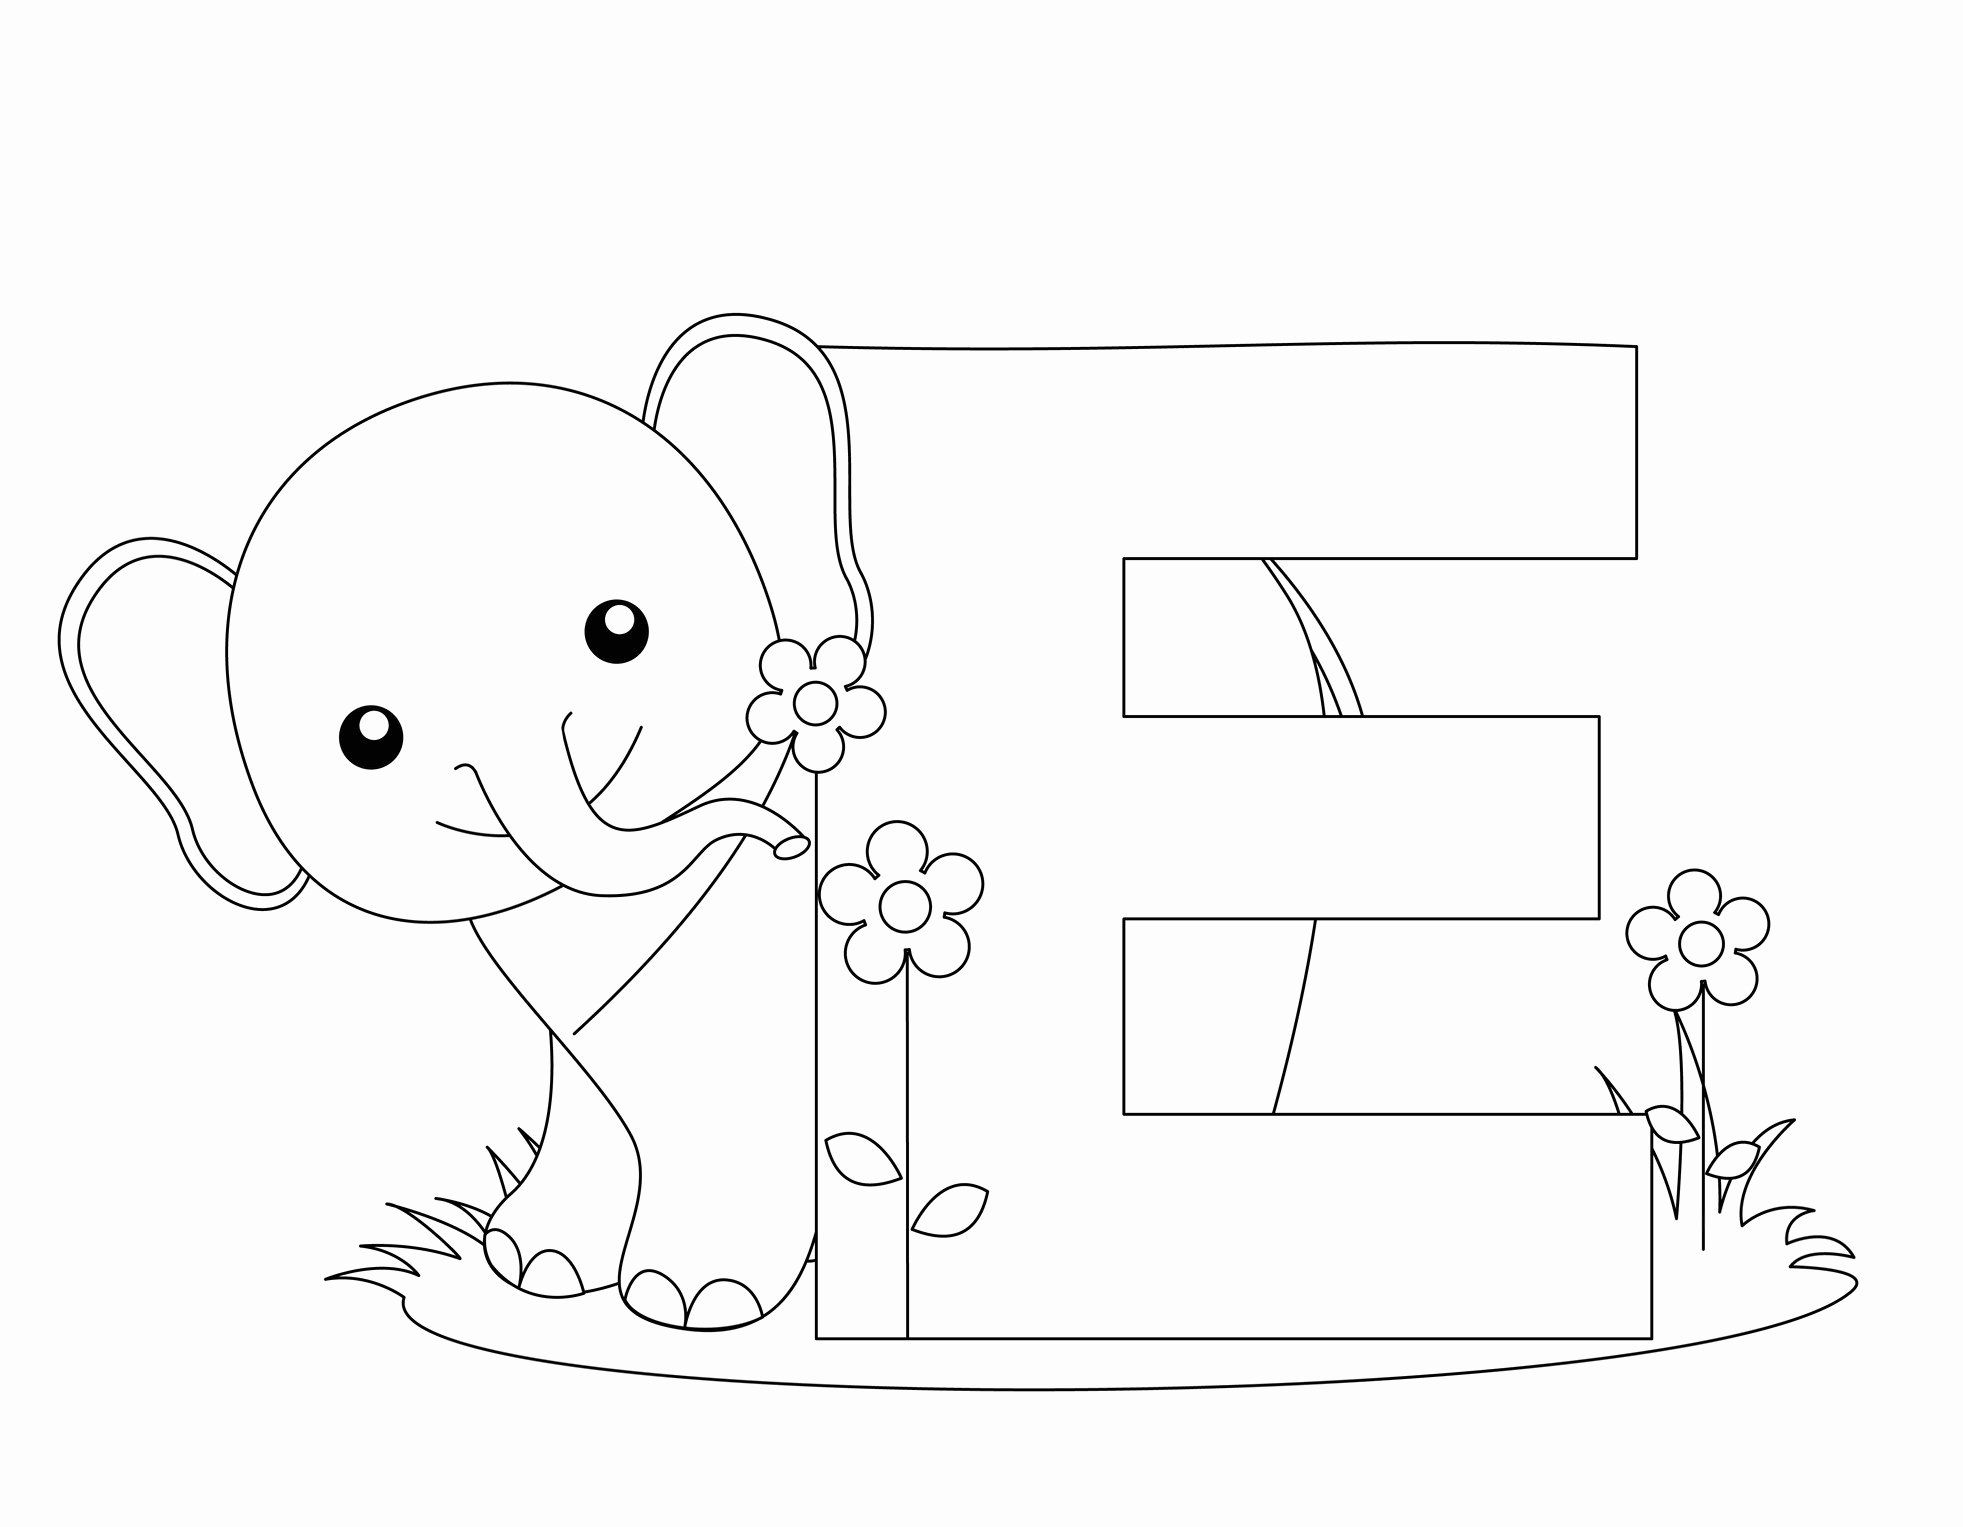 printable alphabet coloring pages  viati coloring in 2020